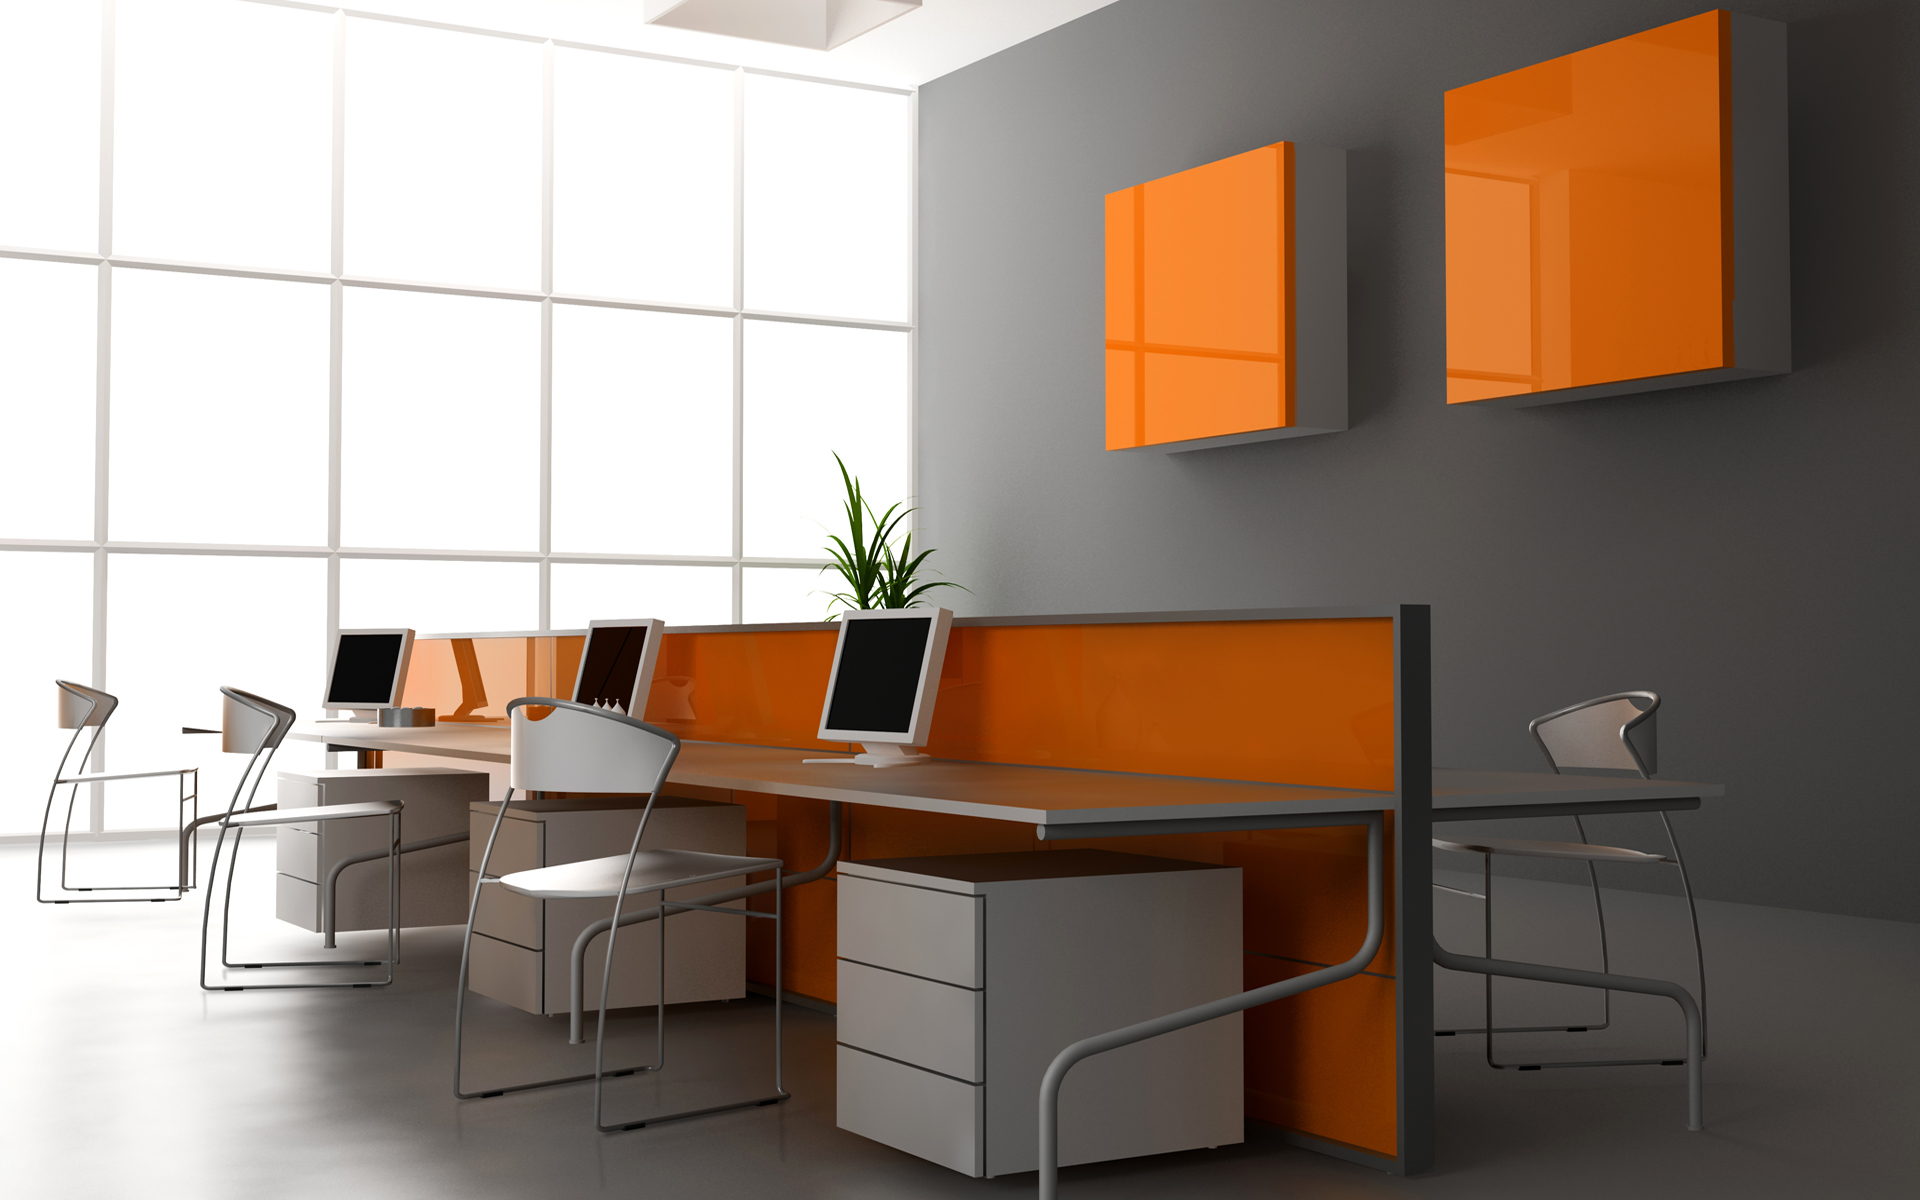 Office room interior decoration interior design ideas for Interior designs of offices